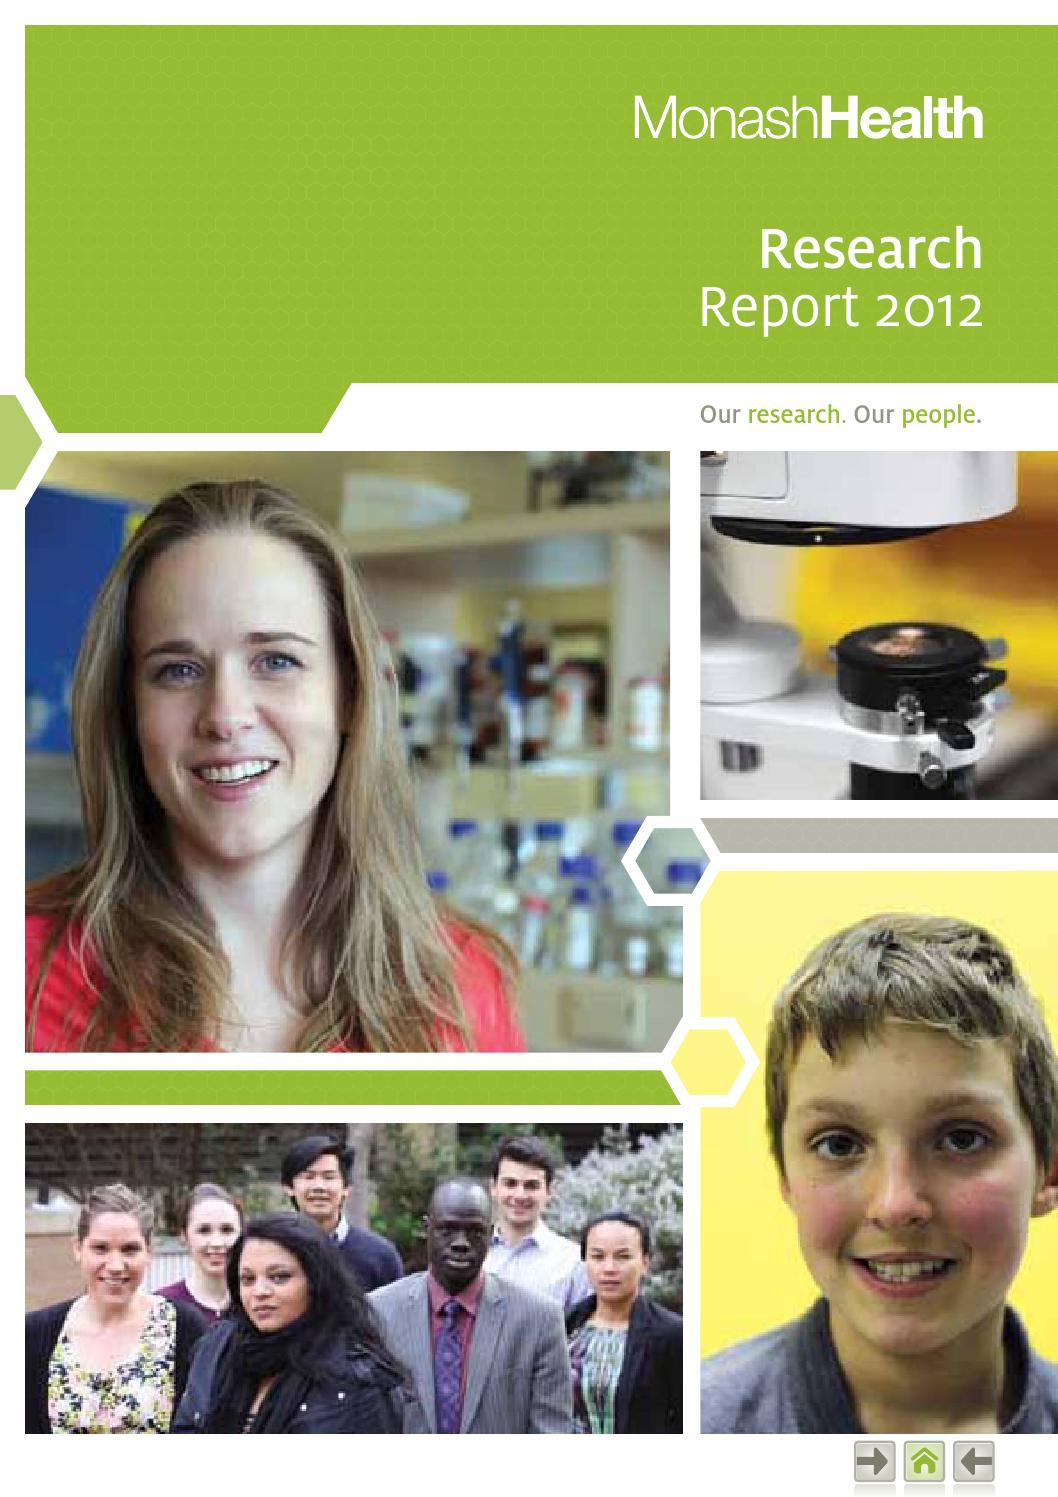 Duchenne Marker Smile Monash Health Research Report 2012 By Monash Health Research Issuu